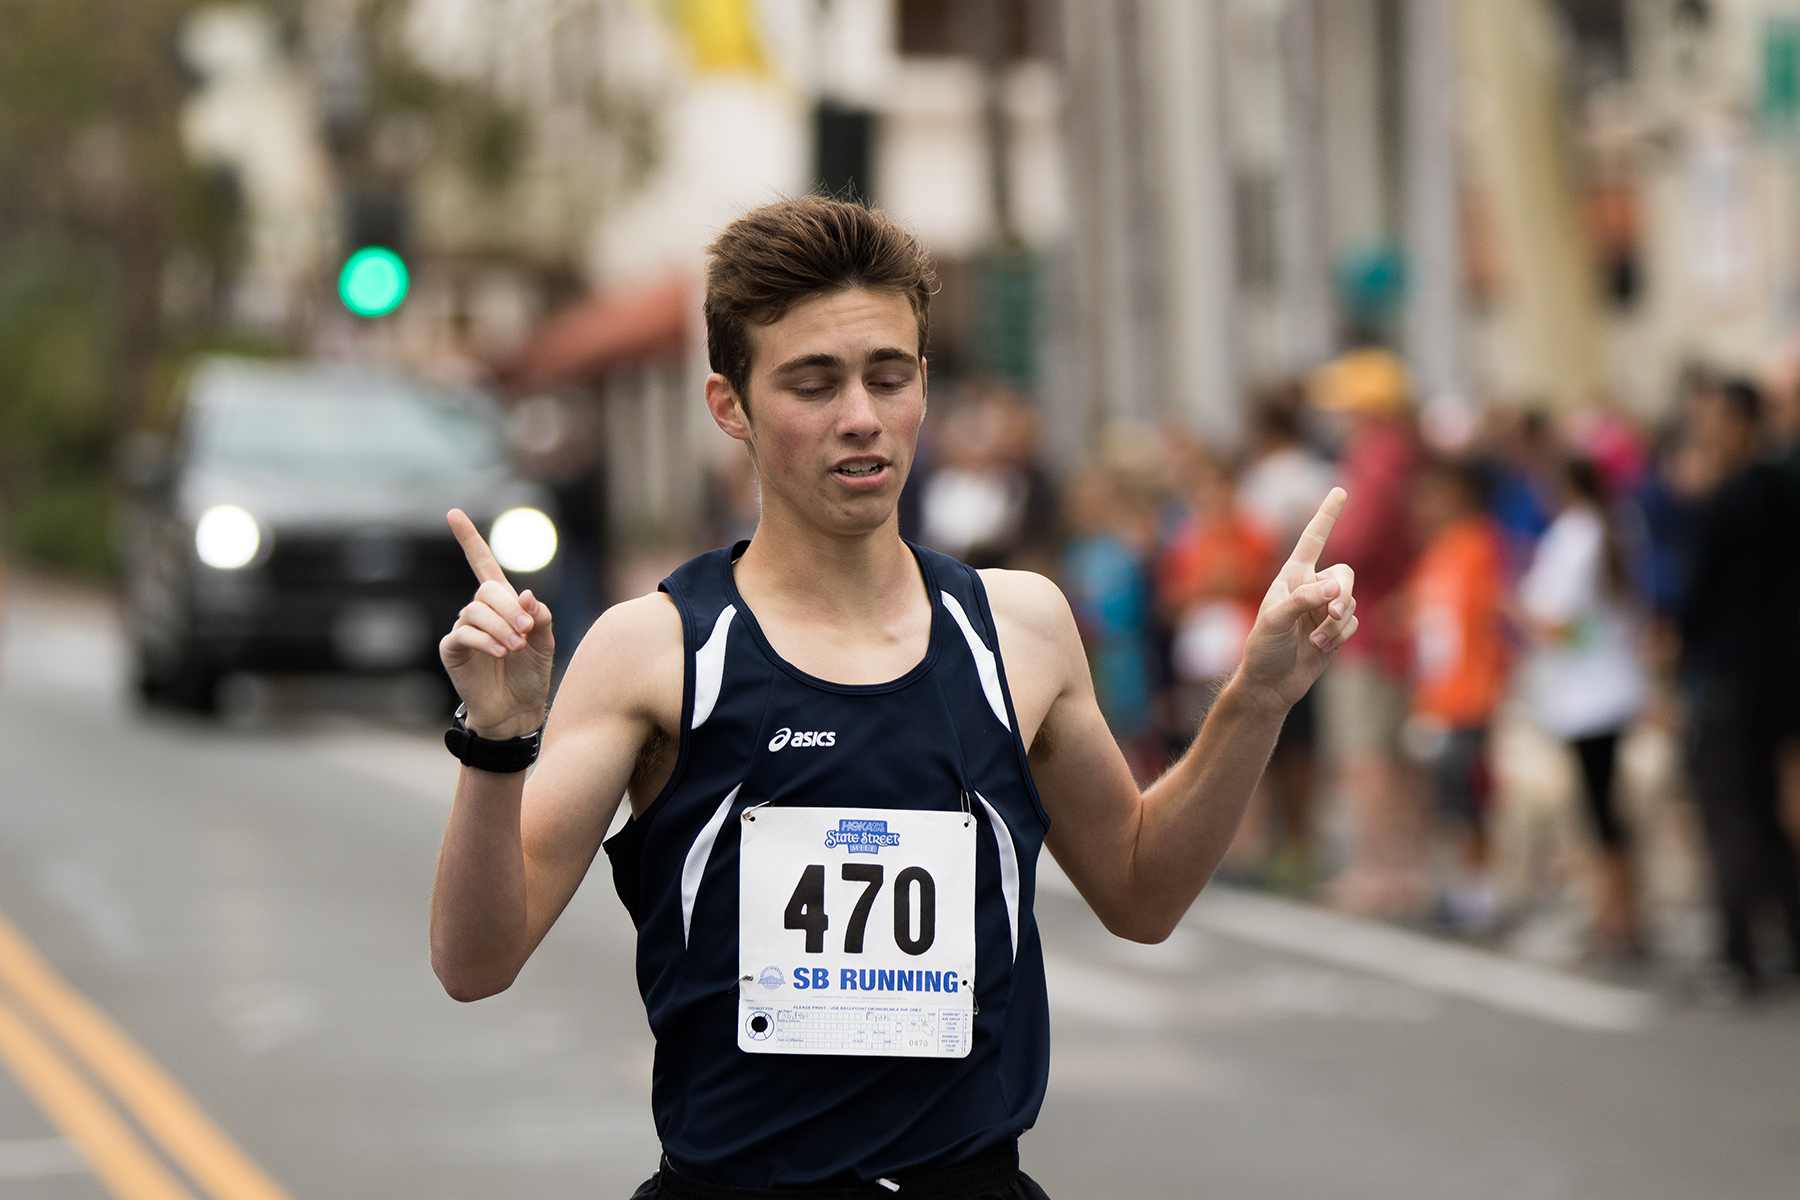 Ryan Painter, 18, of Stevenson Ranch, strikes a pose after winning the boy's 15-19 age group with a time of 4:22.